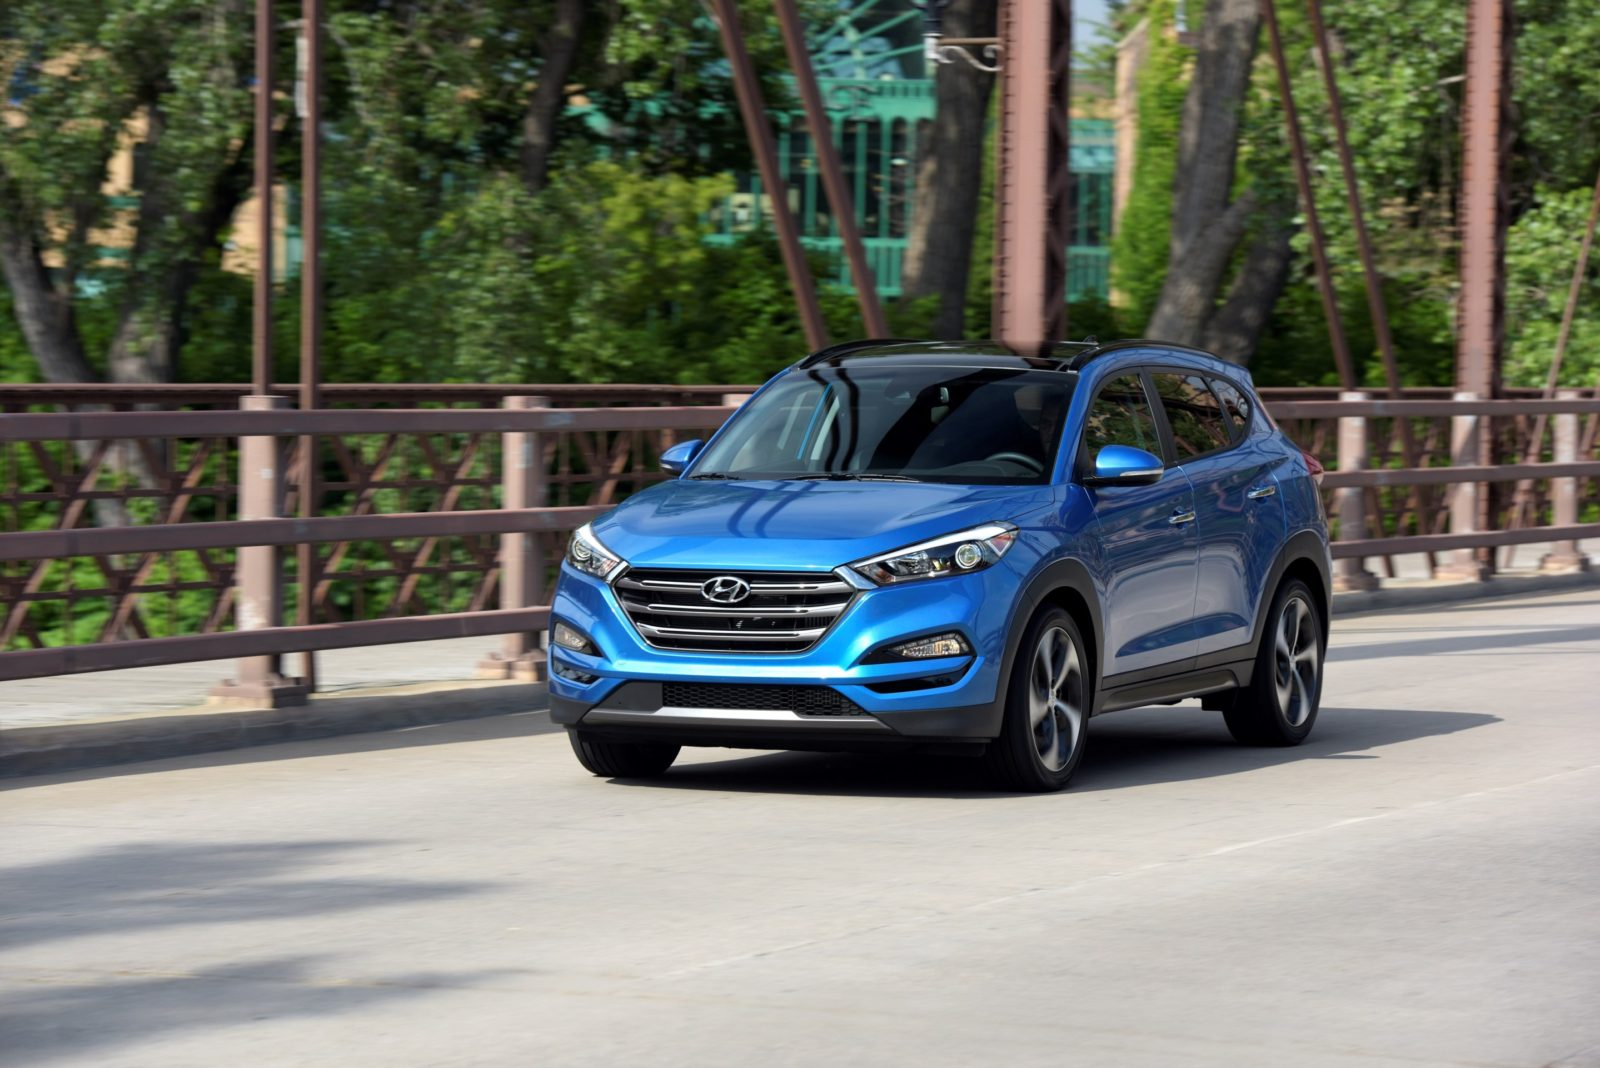 hyundai-recalls-95,515-vehicles-for-premature-wear-of-the-connecting-rod-bearings